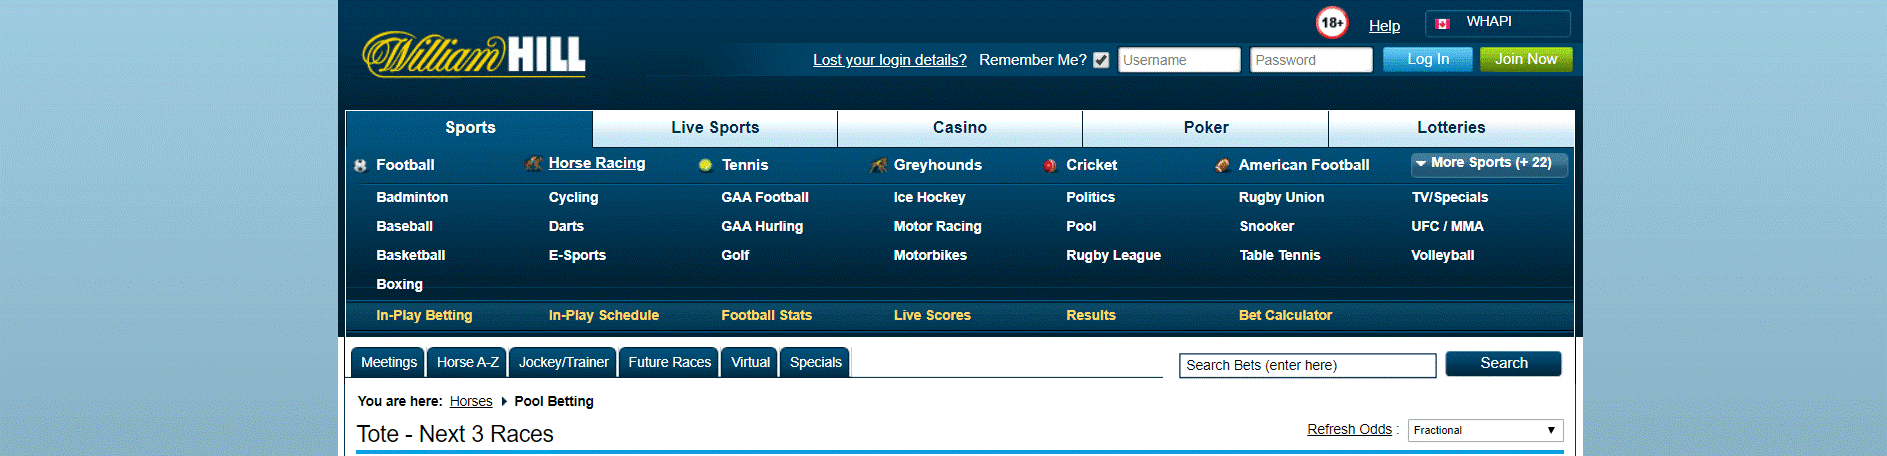 Pool Betting at William Hill